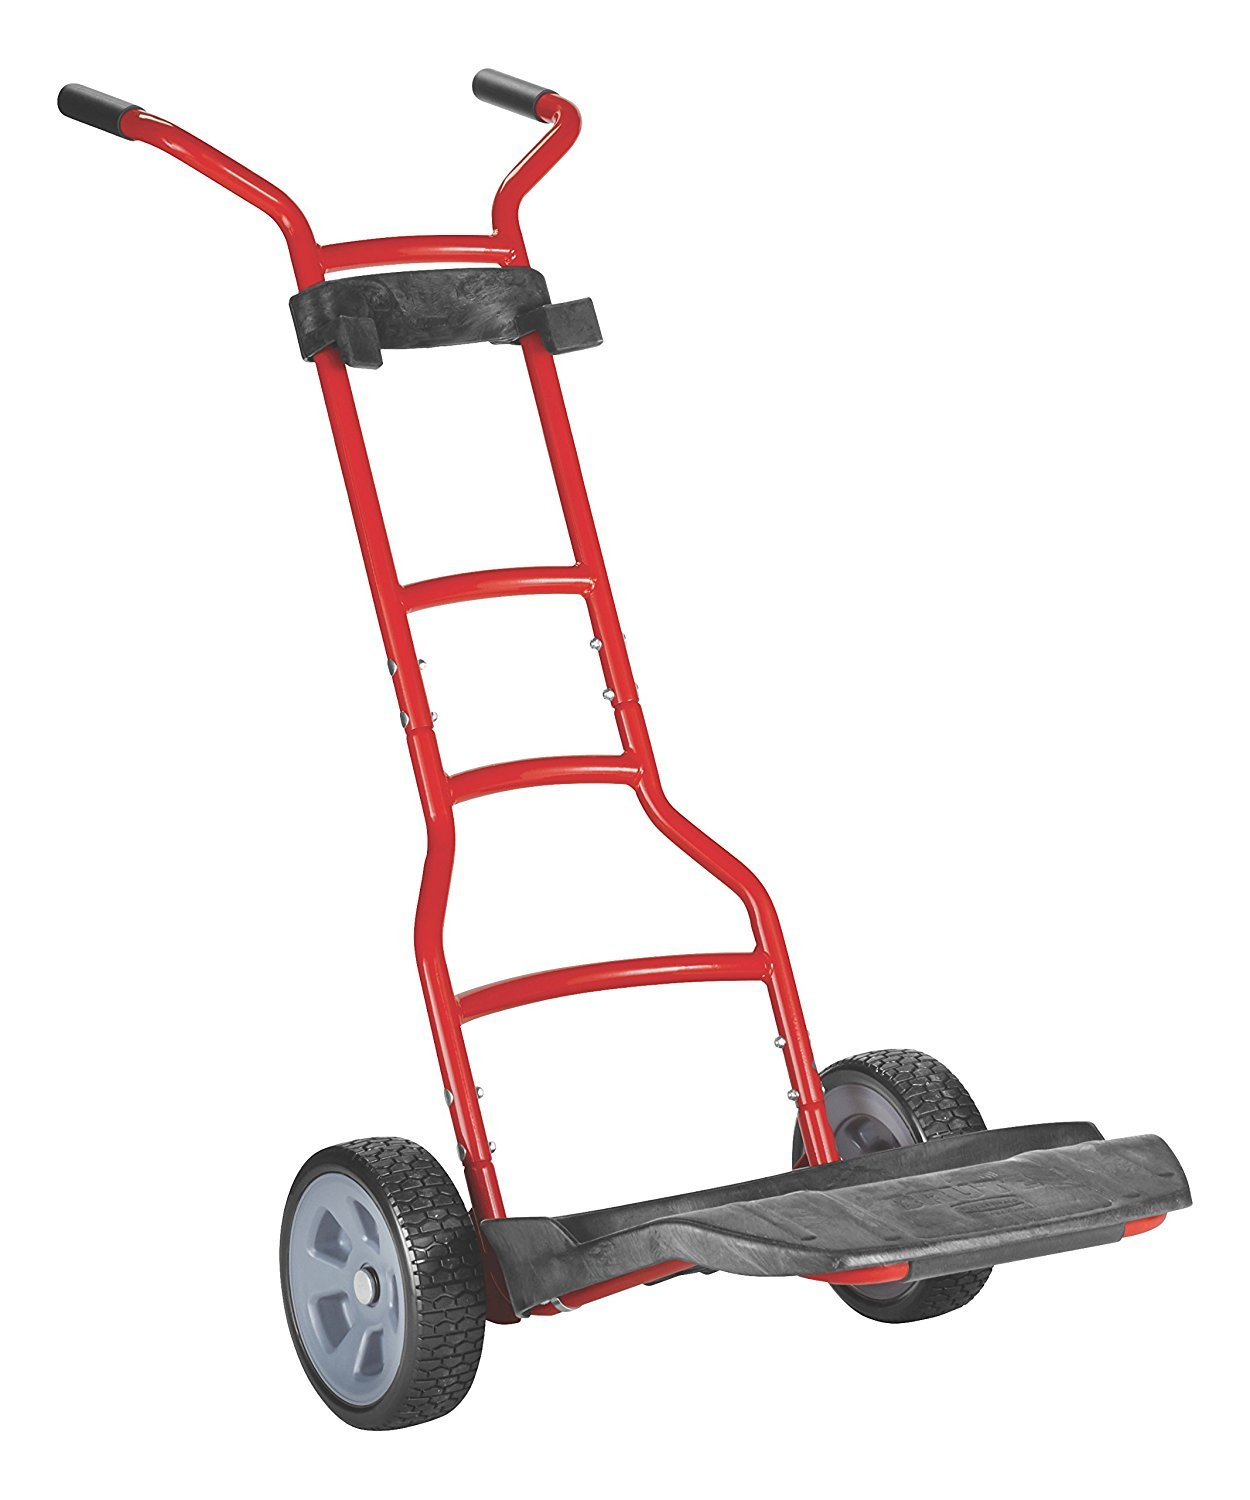 Rubbermaid Commercial Products Brute Construction and Landscape Dolly (1997410) by Rubbermaid Commercial Products (Image #2)